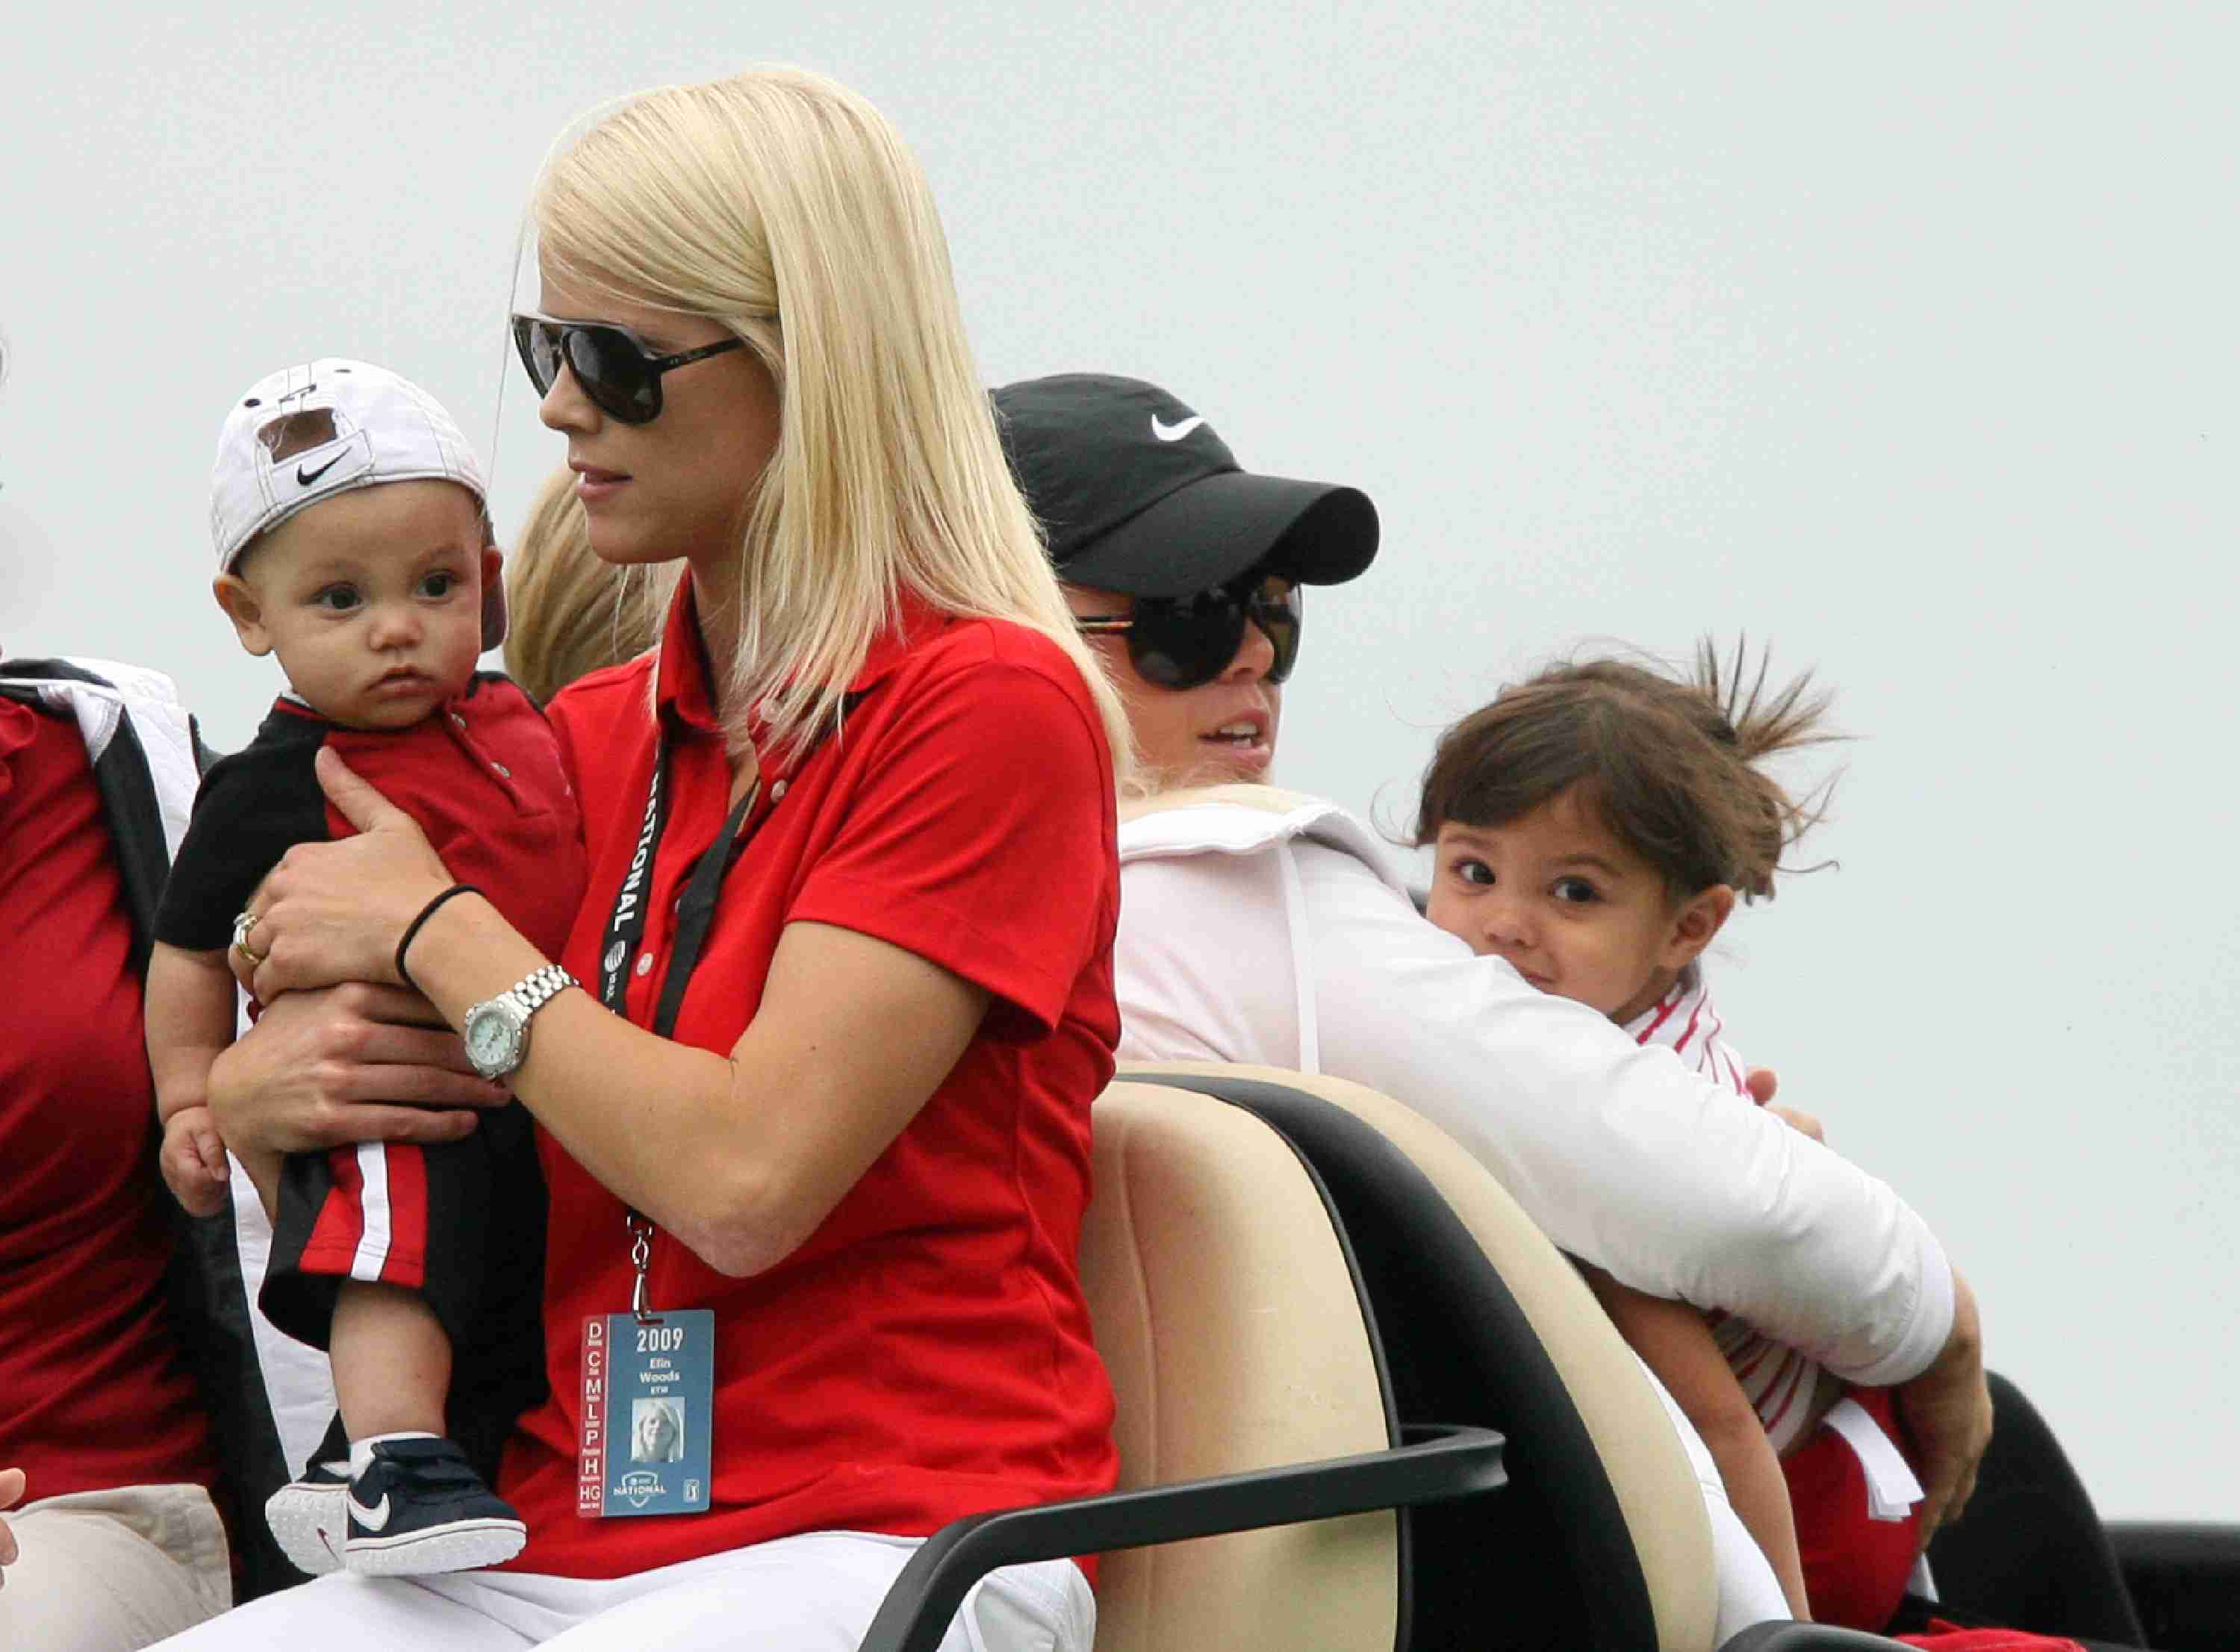 Charlie Woods, Elin Woods, Josefin Nordegren and Sam Woods ride in a golf cart at the 2009 AT&T National